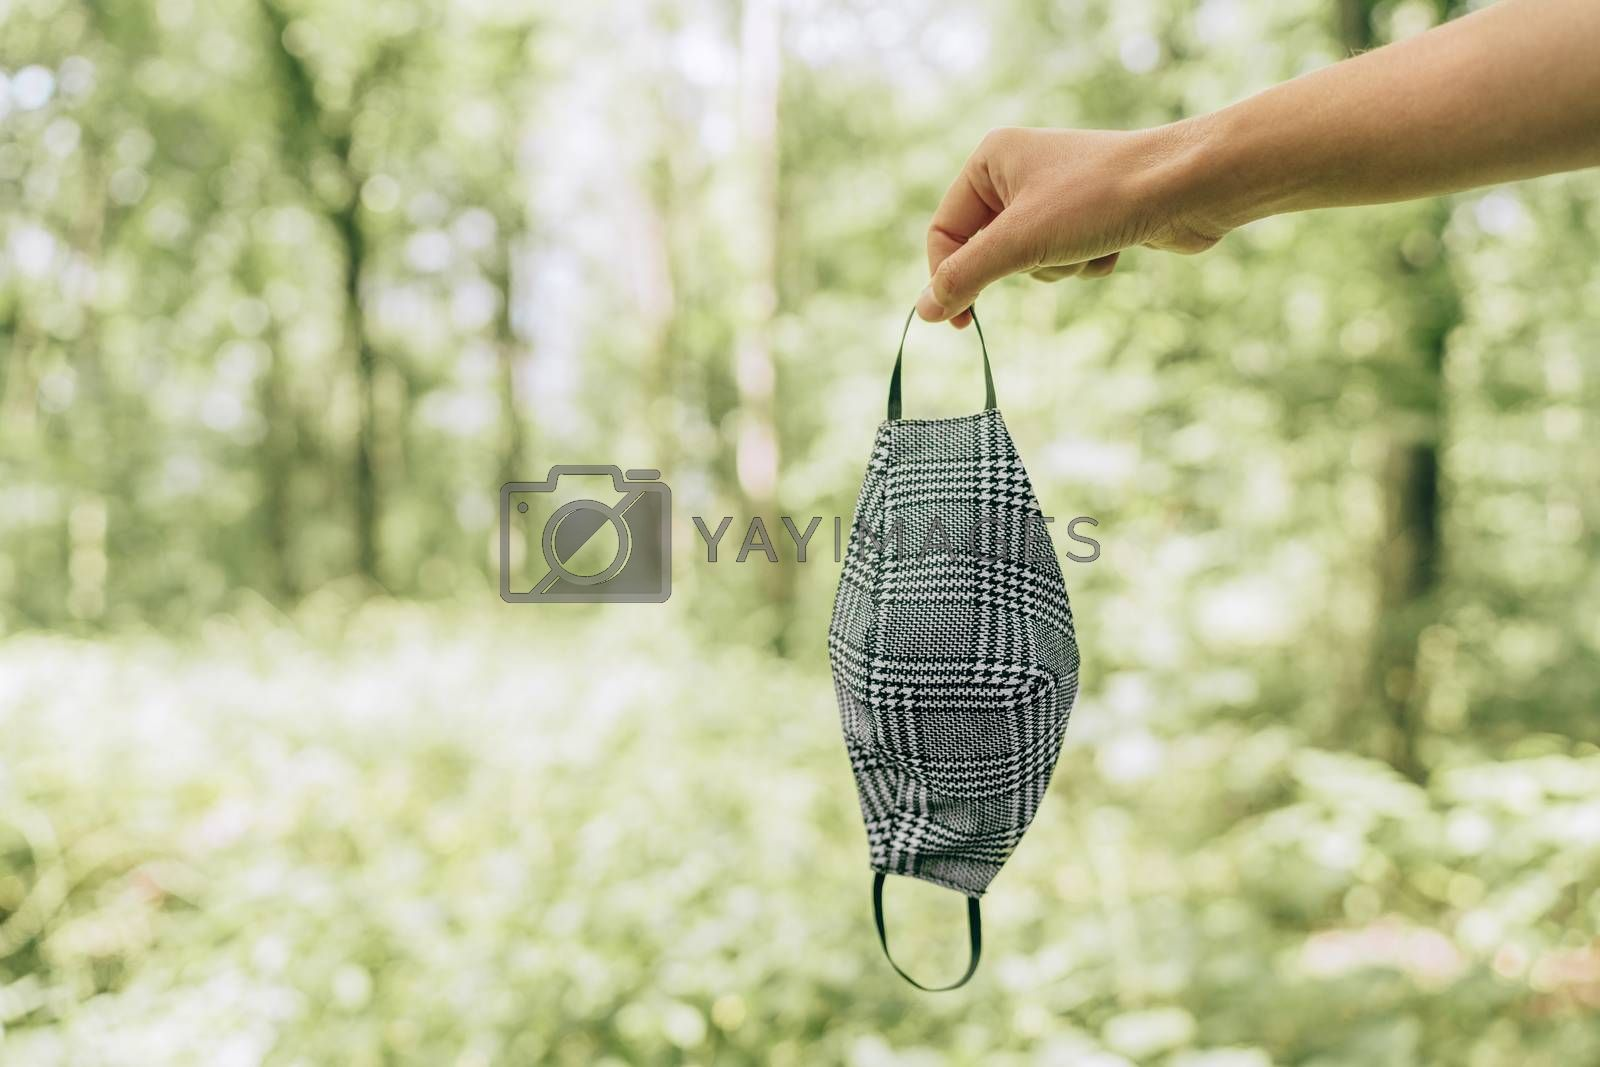 Face mask handmade with fabric in outdoor nature background. Woman holding corona protection covering in forest obligatory in public spaces.